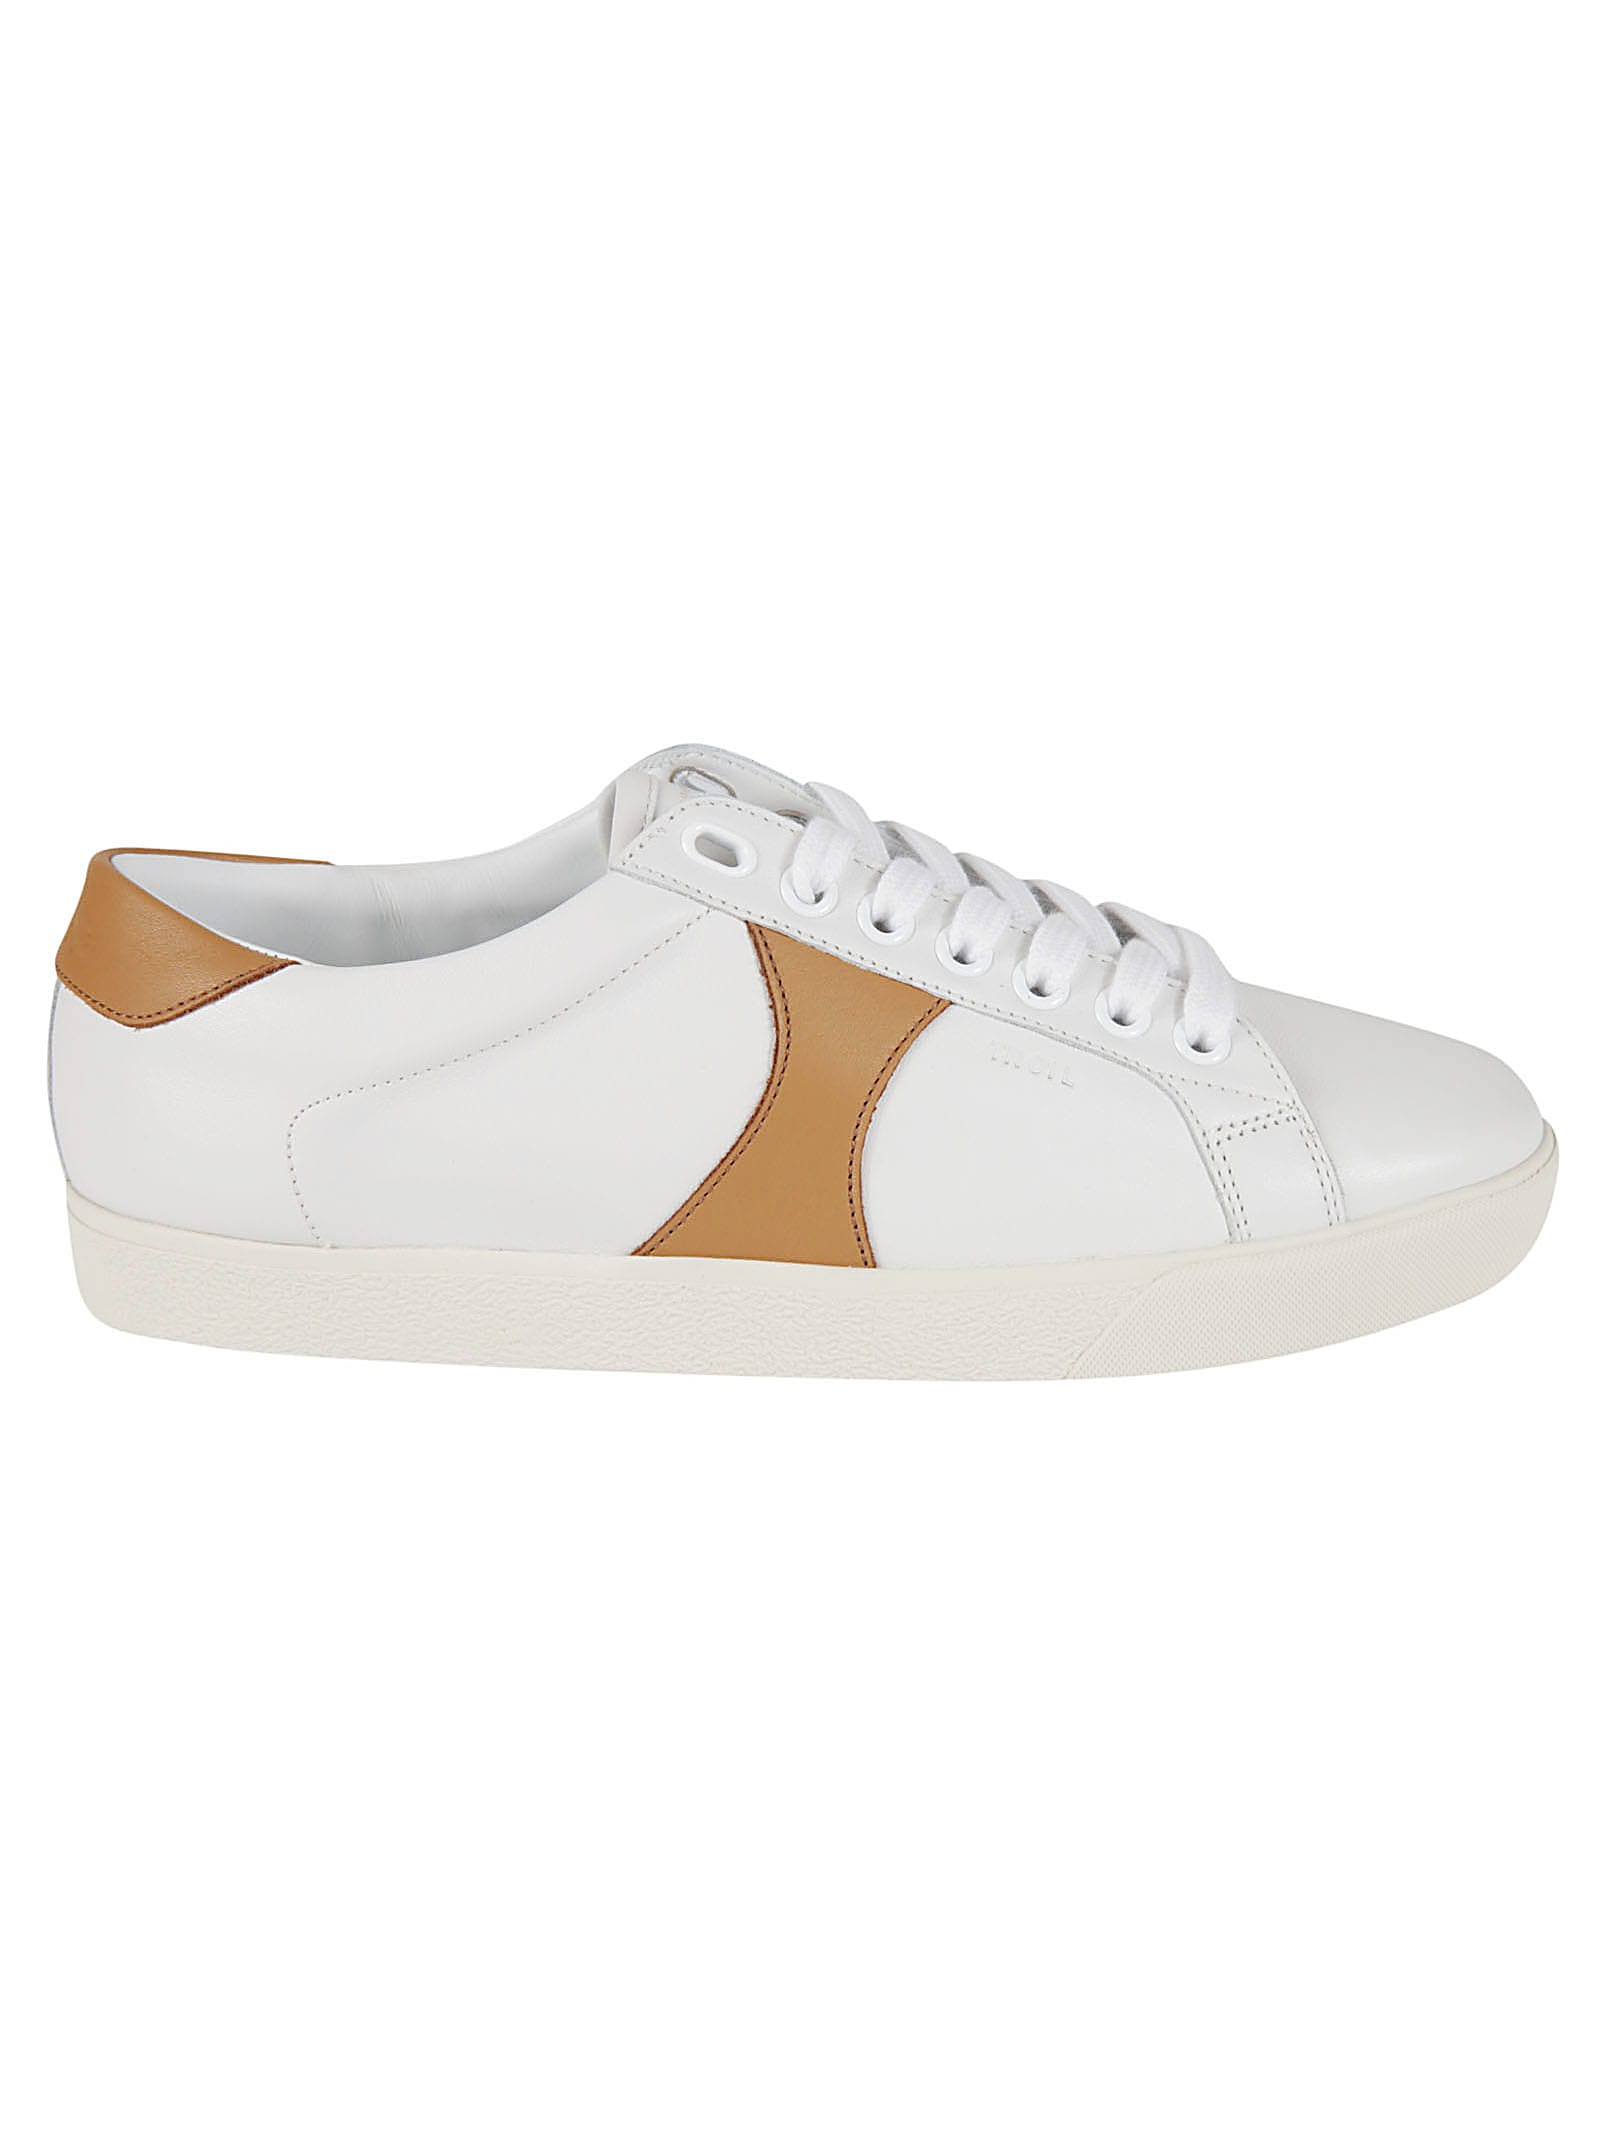 Celine TRIOMPHE LOW LACED-UP SNEAKERS